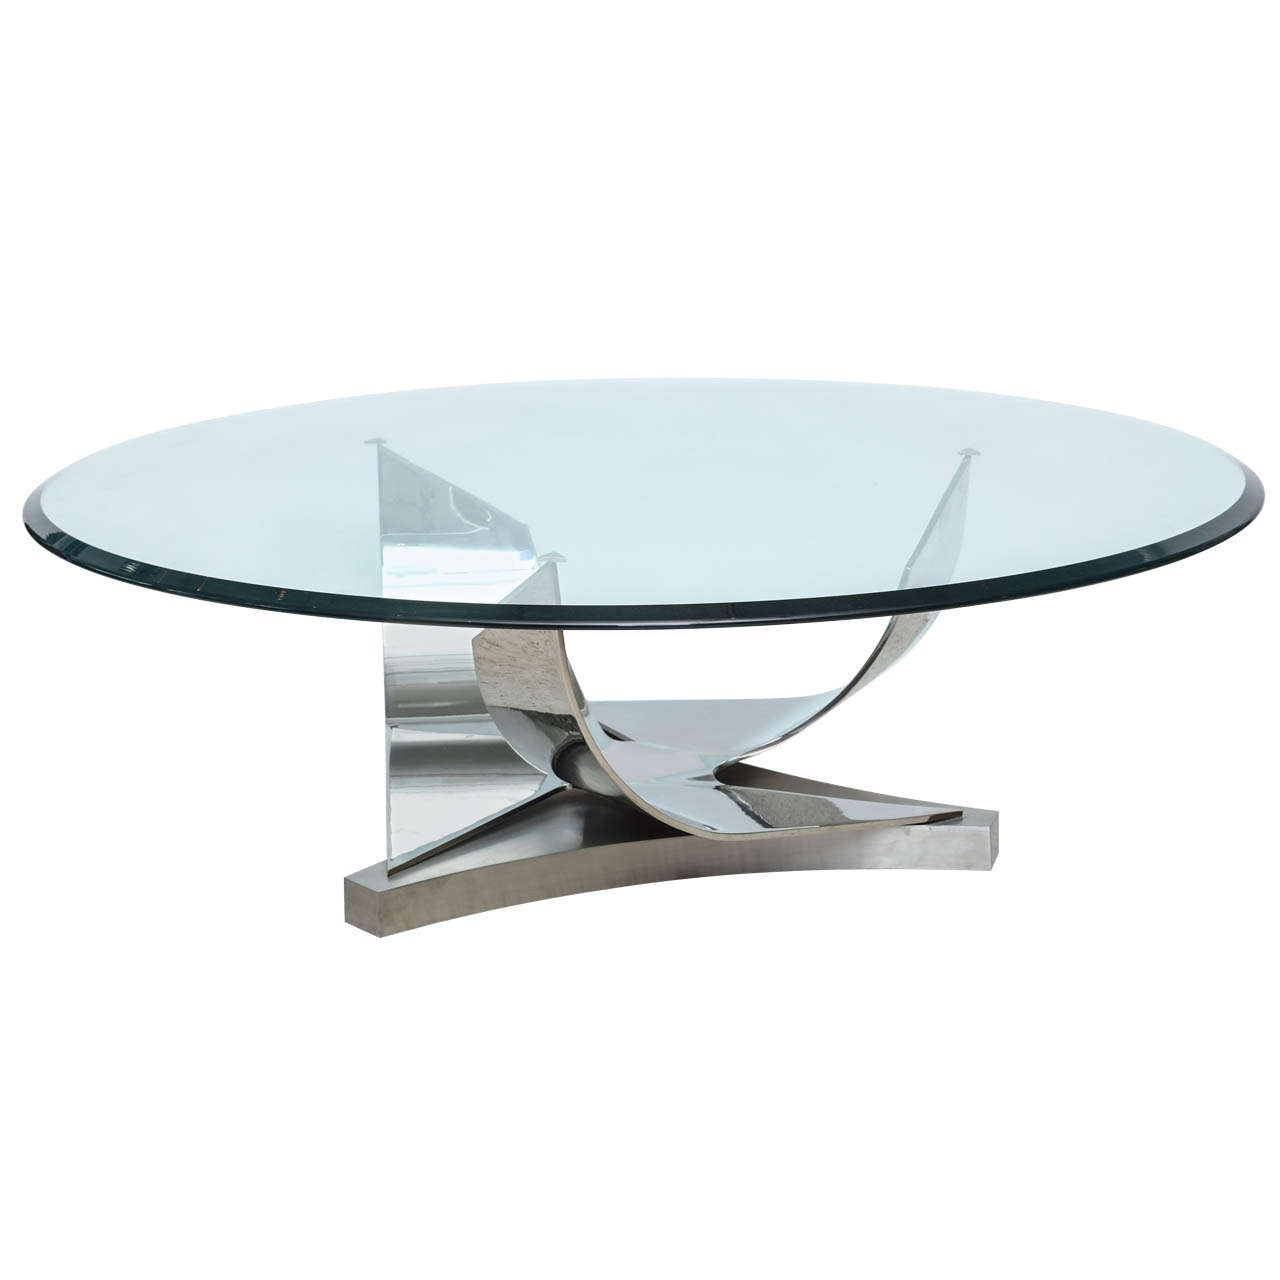 Ron Seff Polished Chrome And Stainless Steel Glass Top Low Table